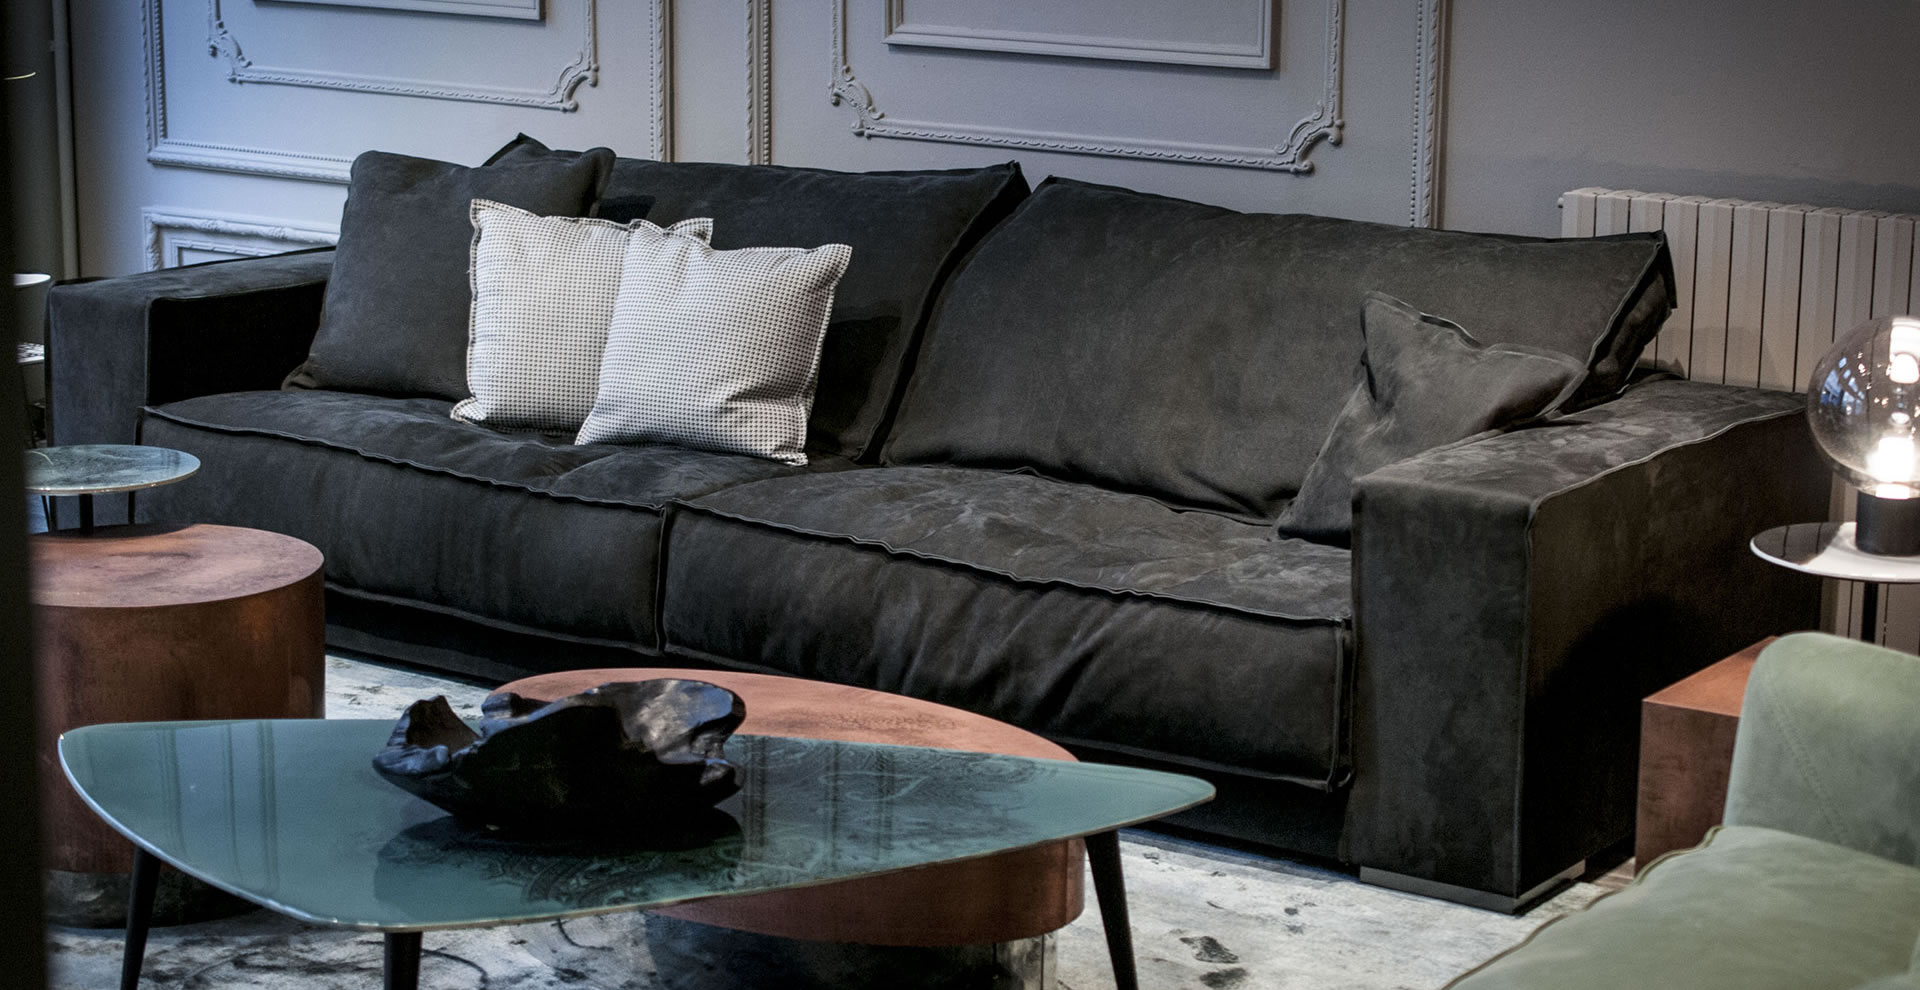 Full Size of Baxter Sofa Chester Moon Furniture List Viktor Jonathan Adler Italy Criteria Collection Budapest Ez Living Housse Harvey Norman Couch Paola Navone Soft Sofa Baxter Sofa